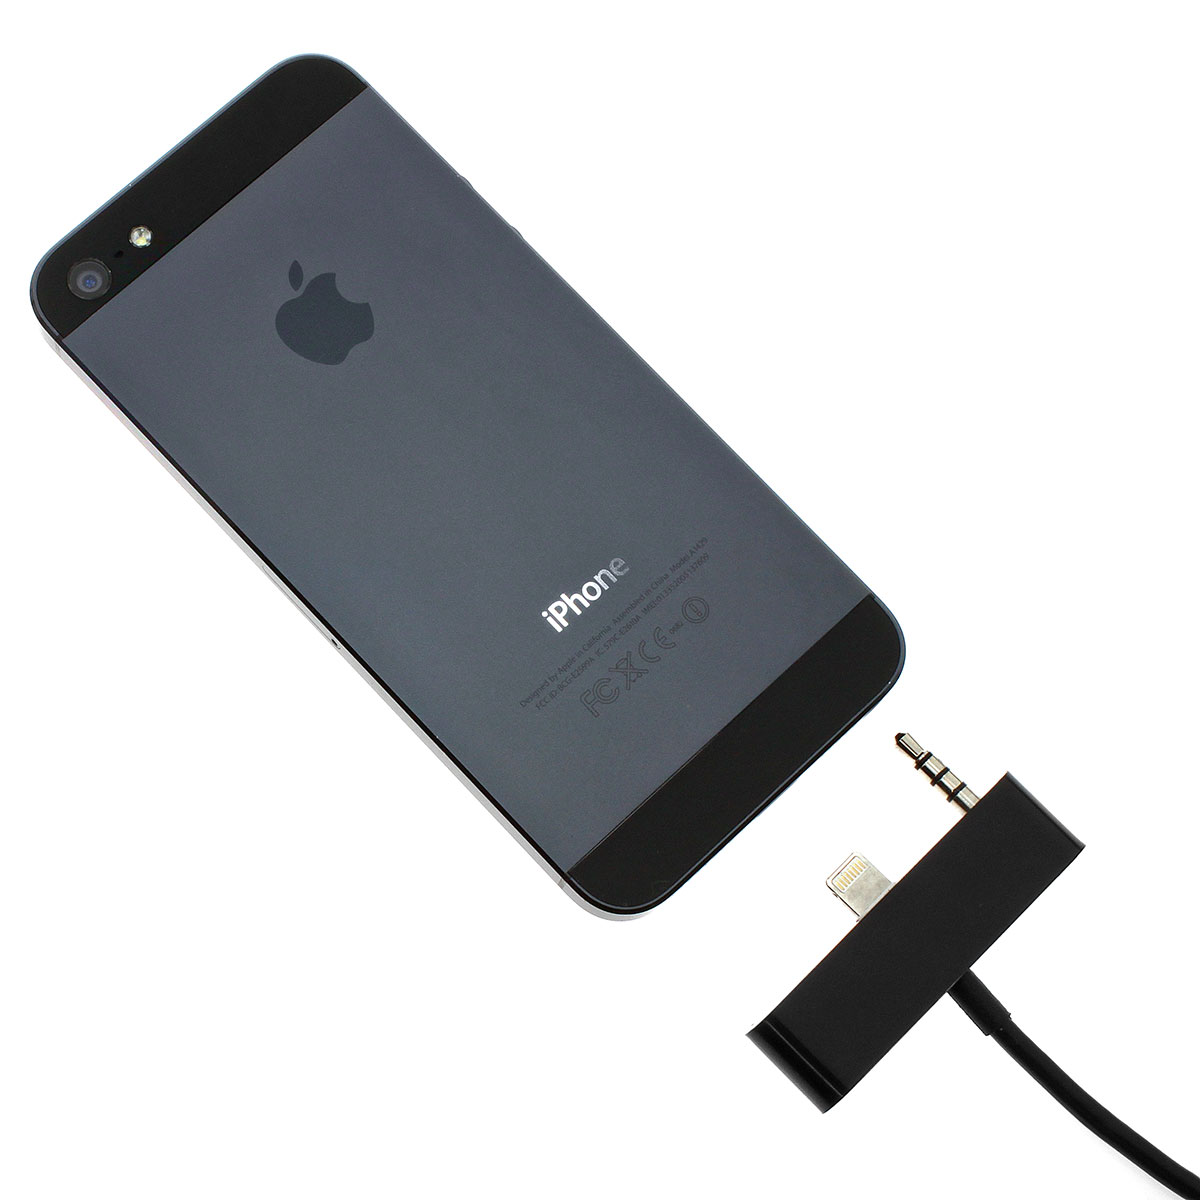 iphone 5 5s cinch klinke adapter stecker kabel usb aux auto kabel audio schwarz ebay. Black Bedroom Furniture Sets. Home Design Ideas